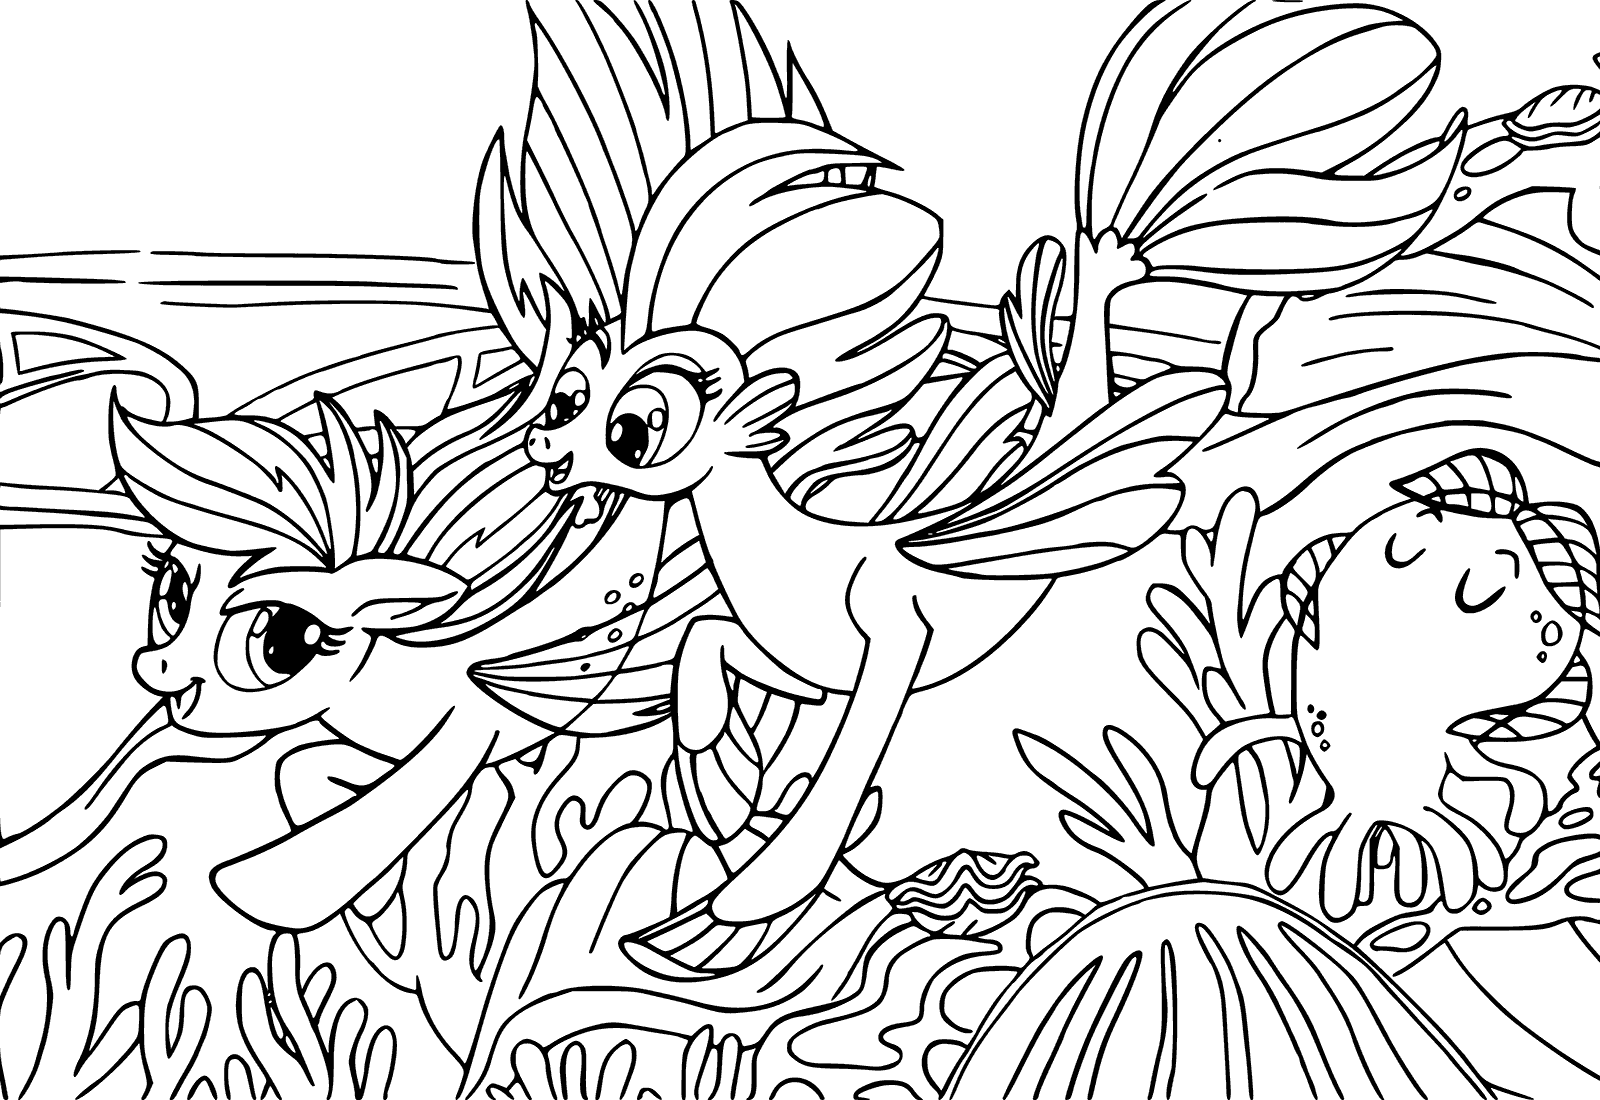 my little pony the movie coloring pages to download and print for free